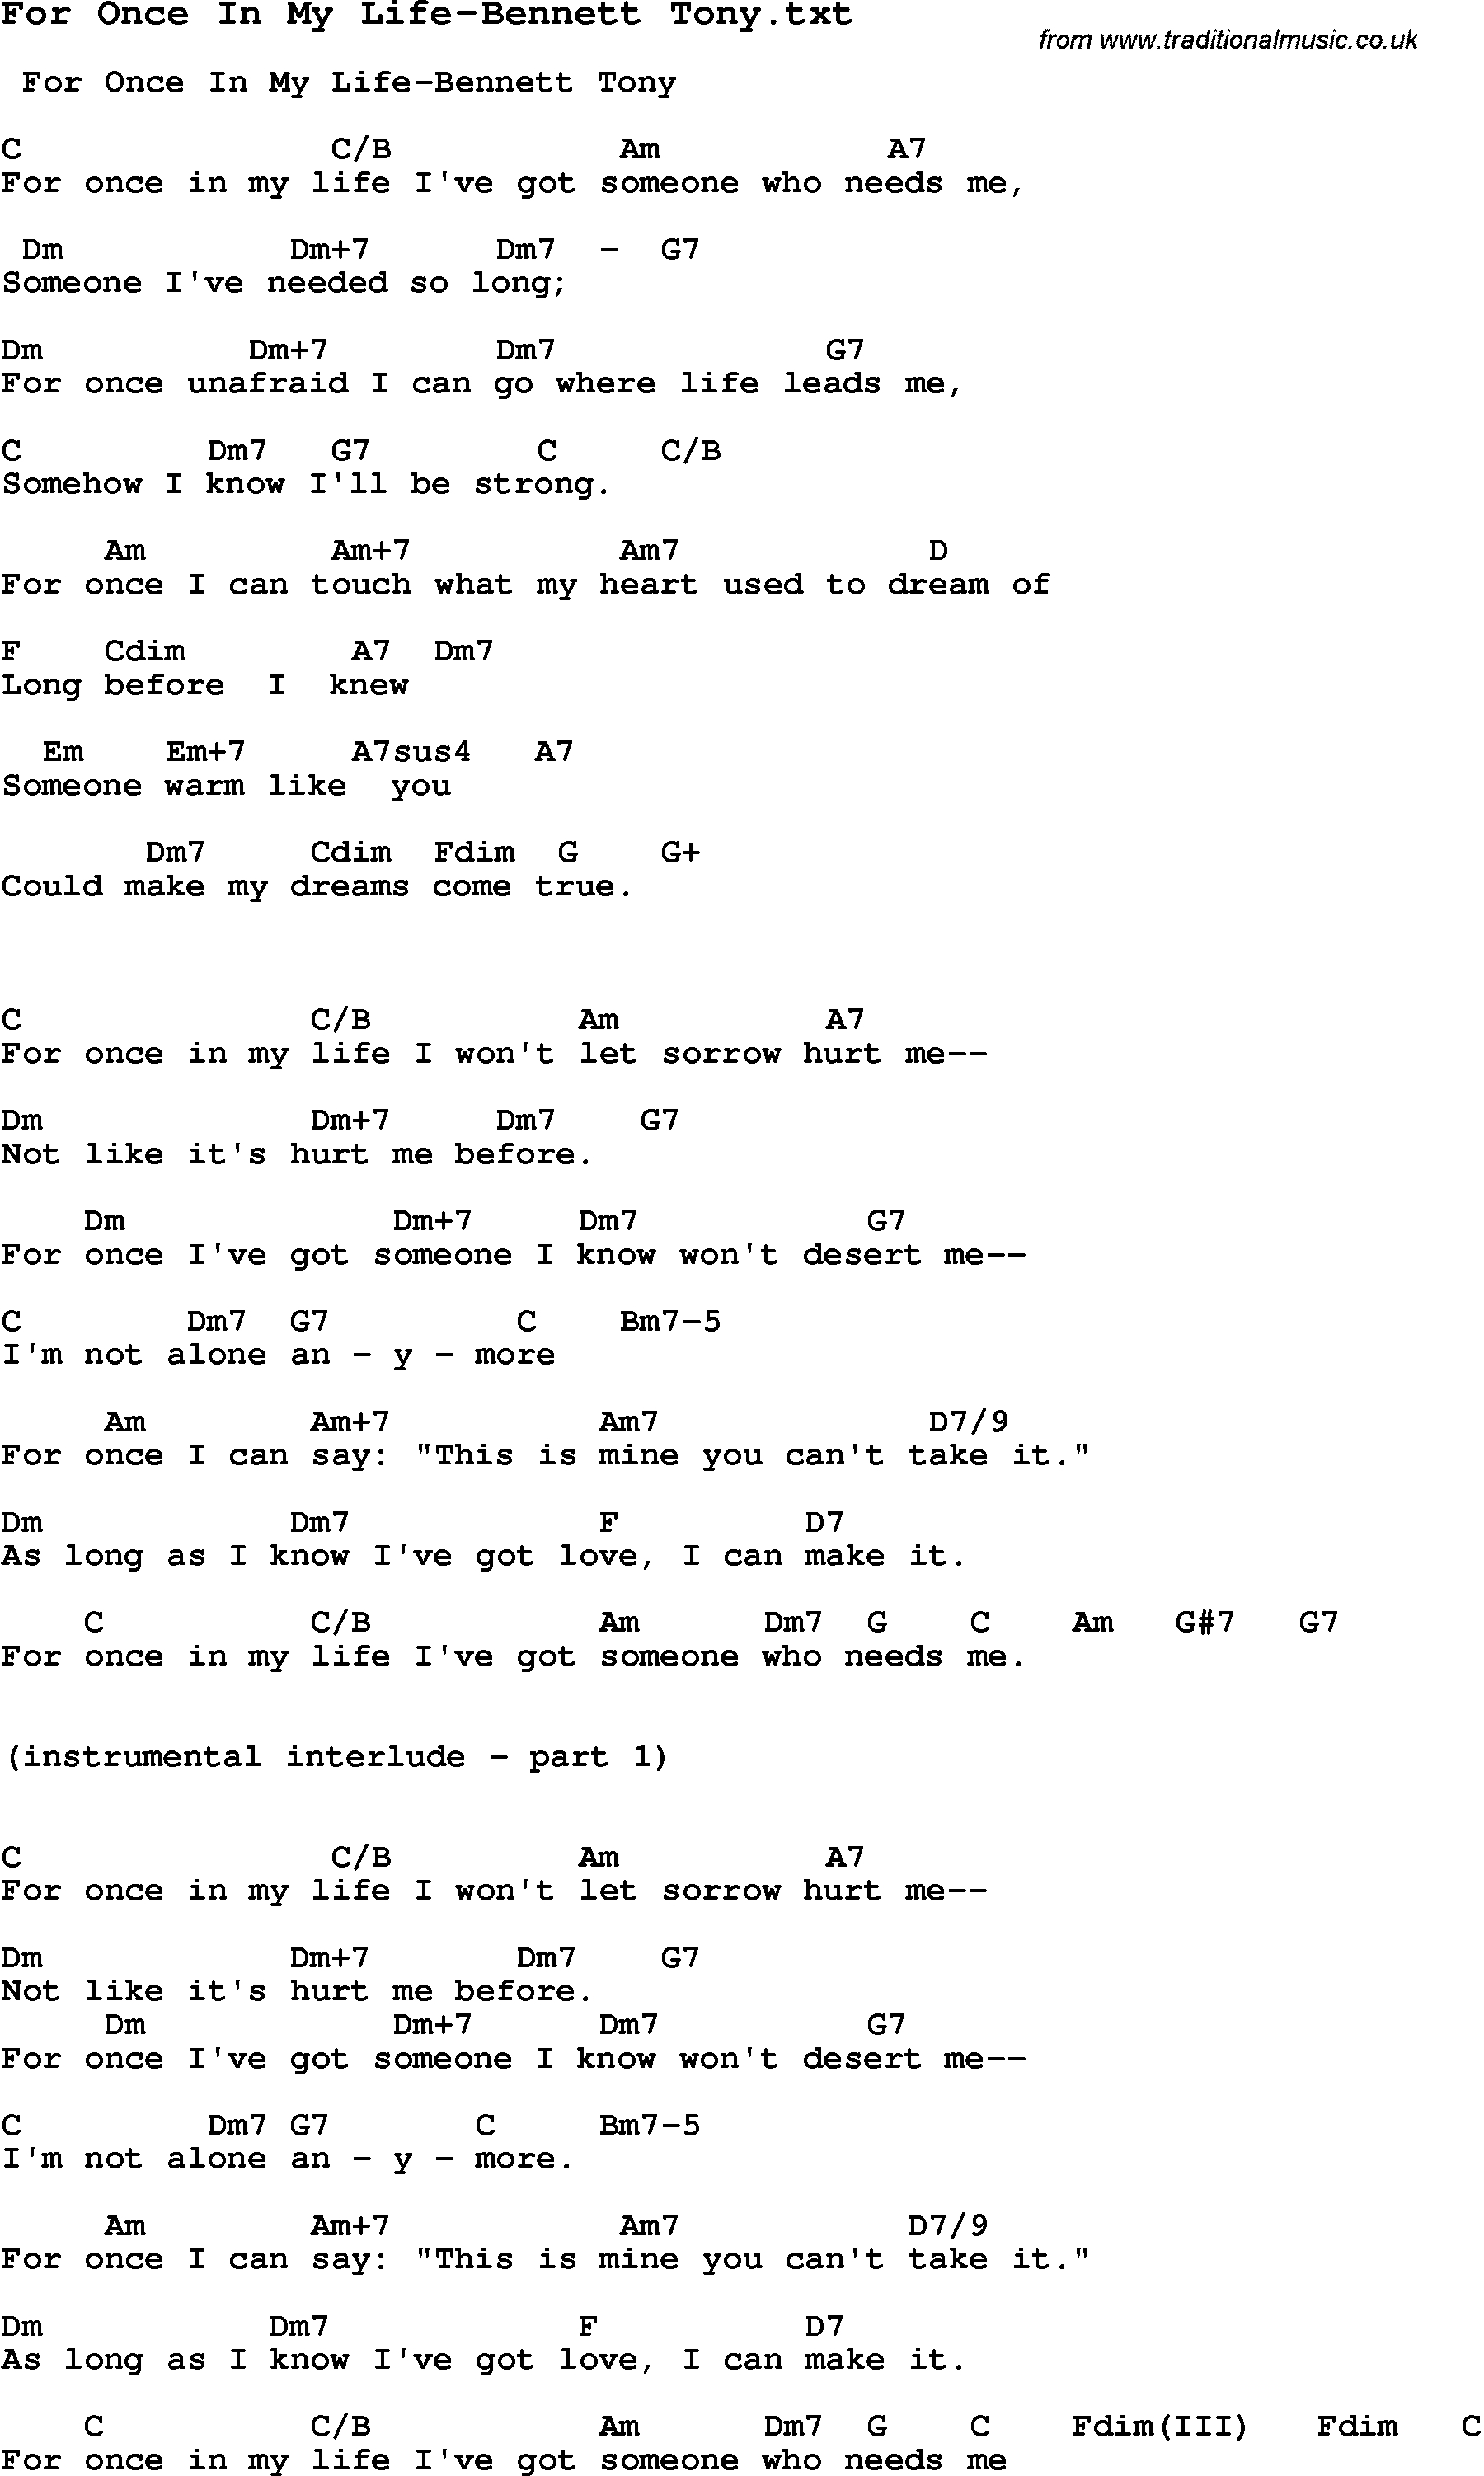 In My Life Chords Jazz Song For Once In My Life Bennett Tony With Chords Tabs And